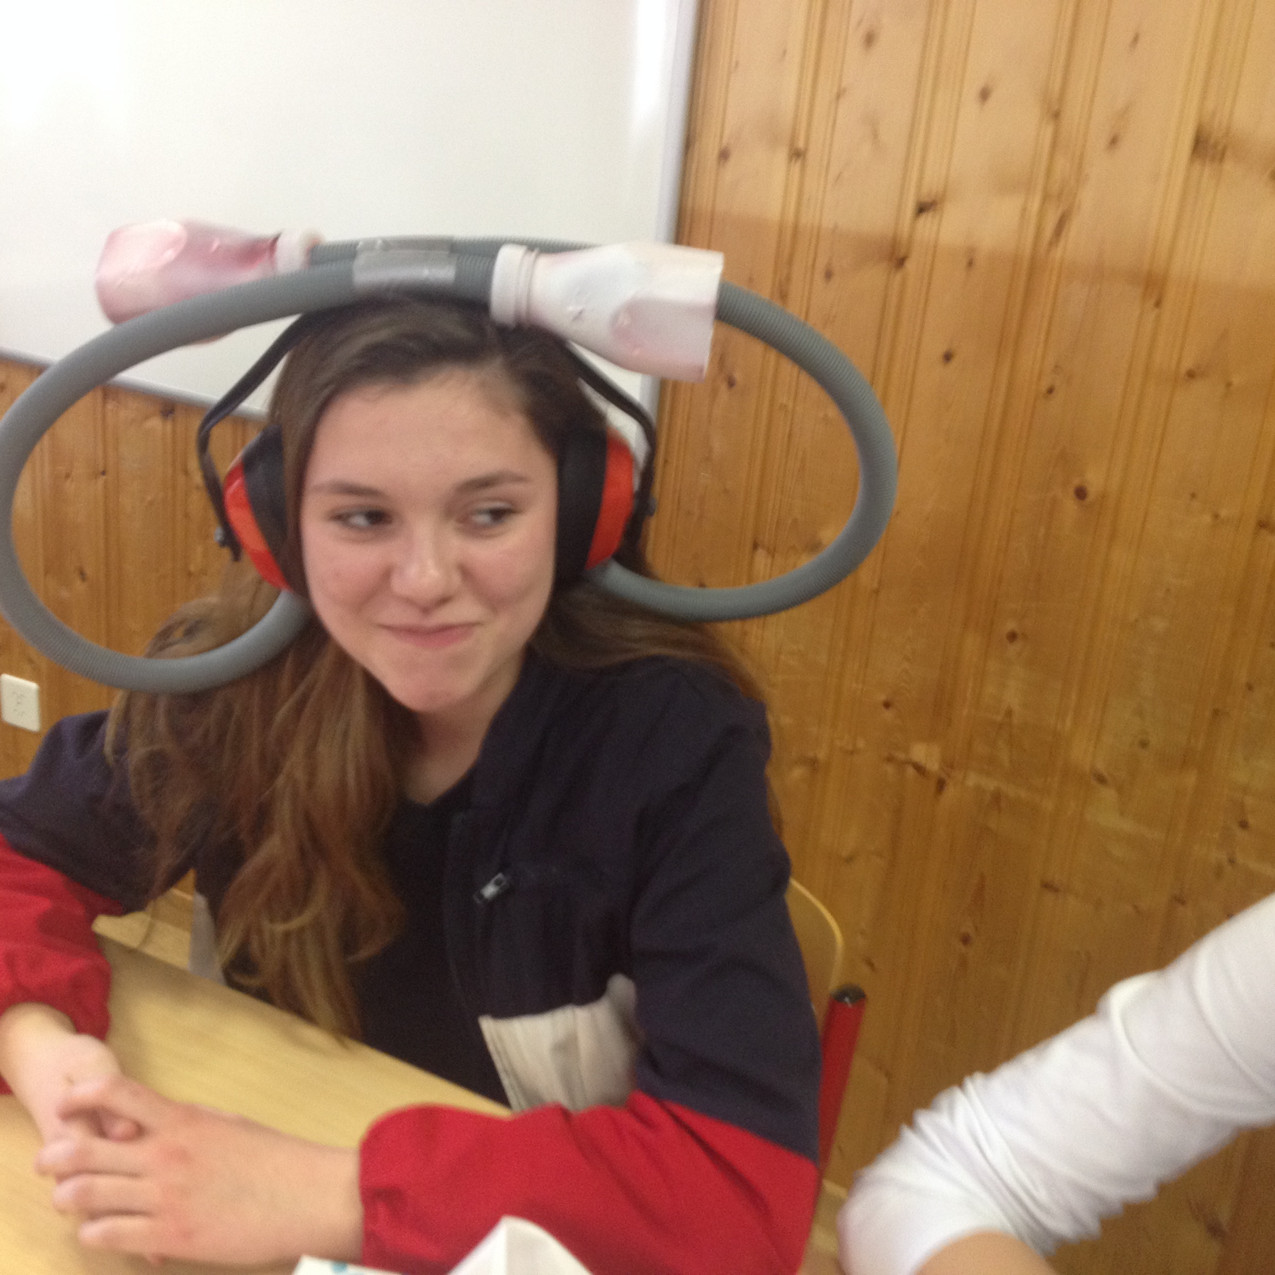 Trying on the Confuserphones